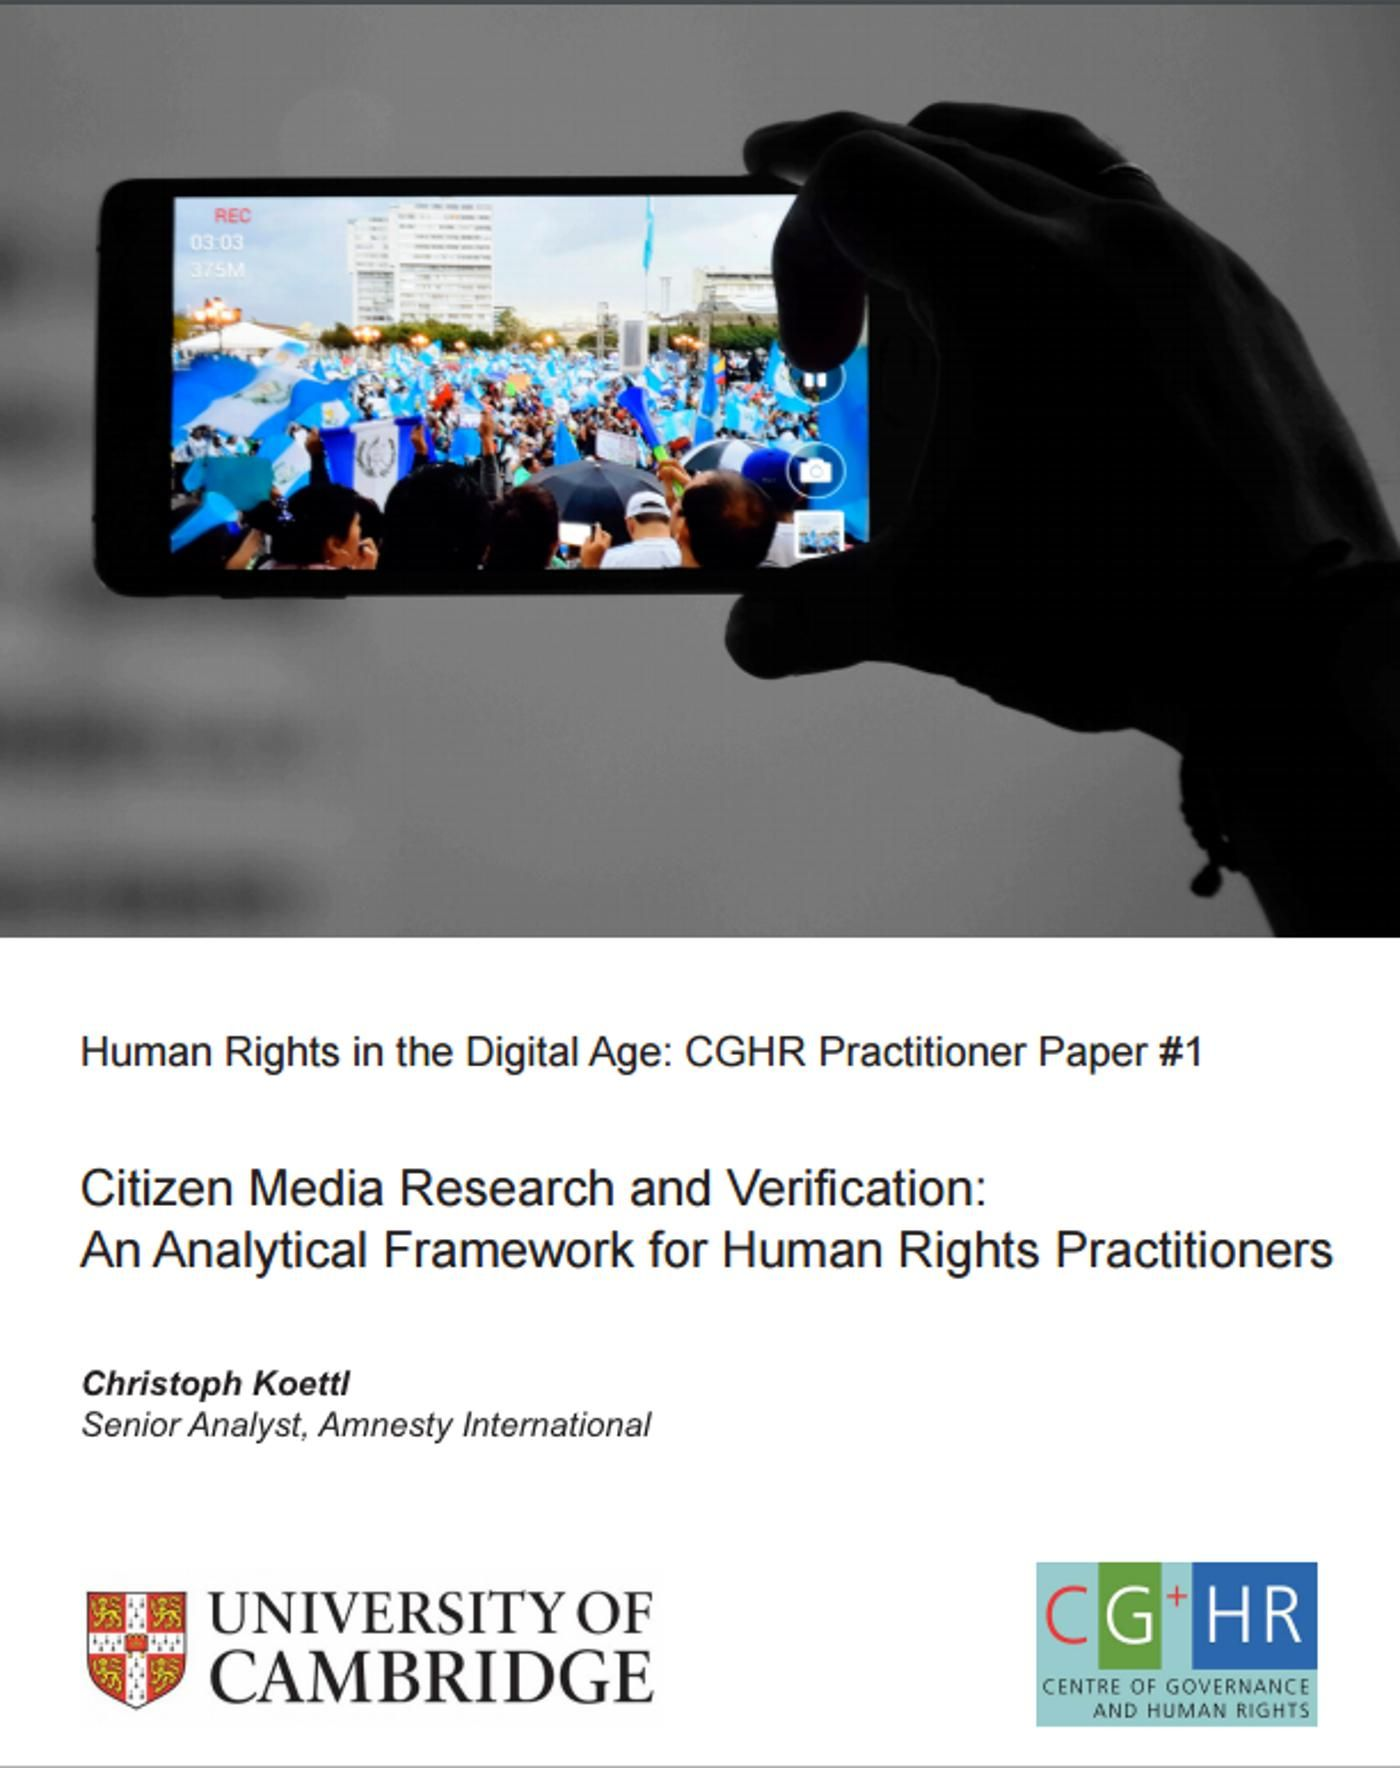 Citizen Media Research and Verification: An Analytical Framework for Human Rights